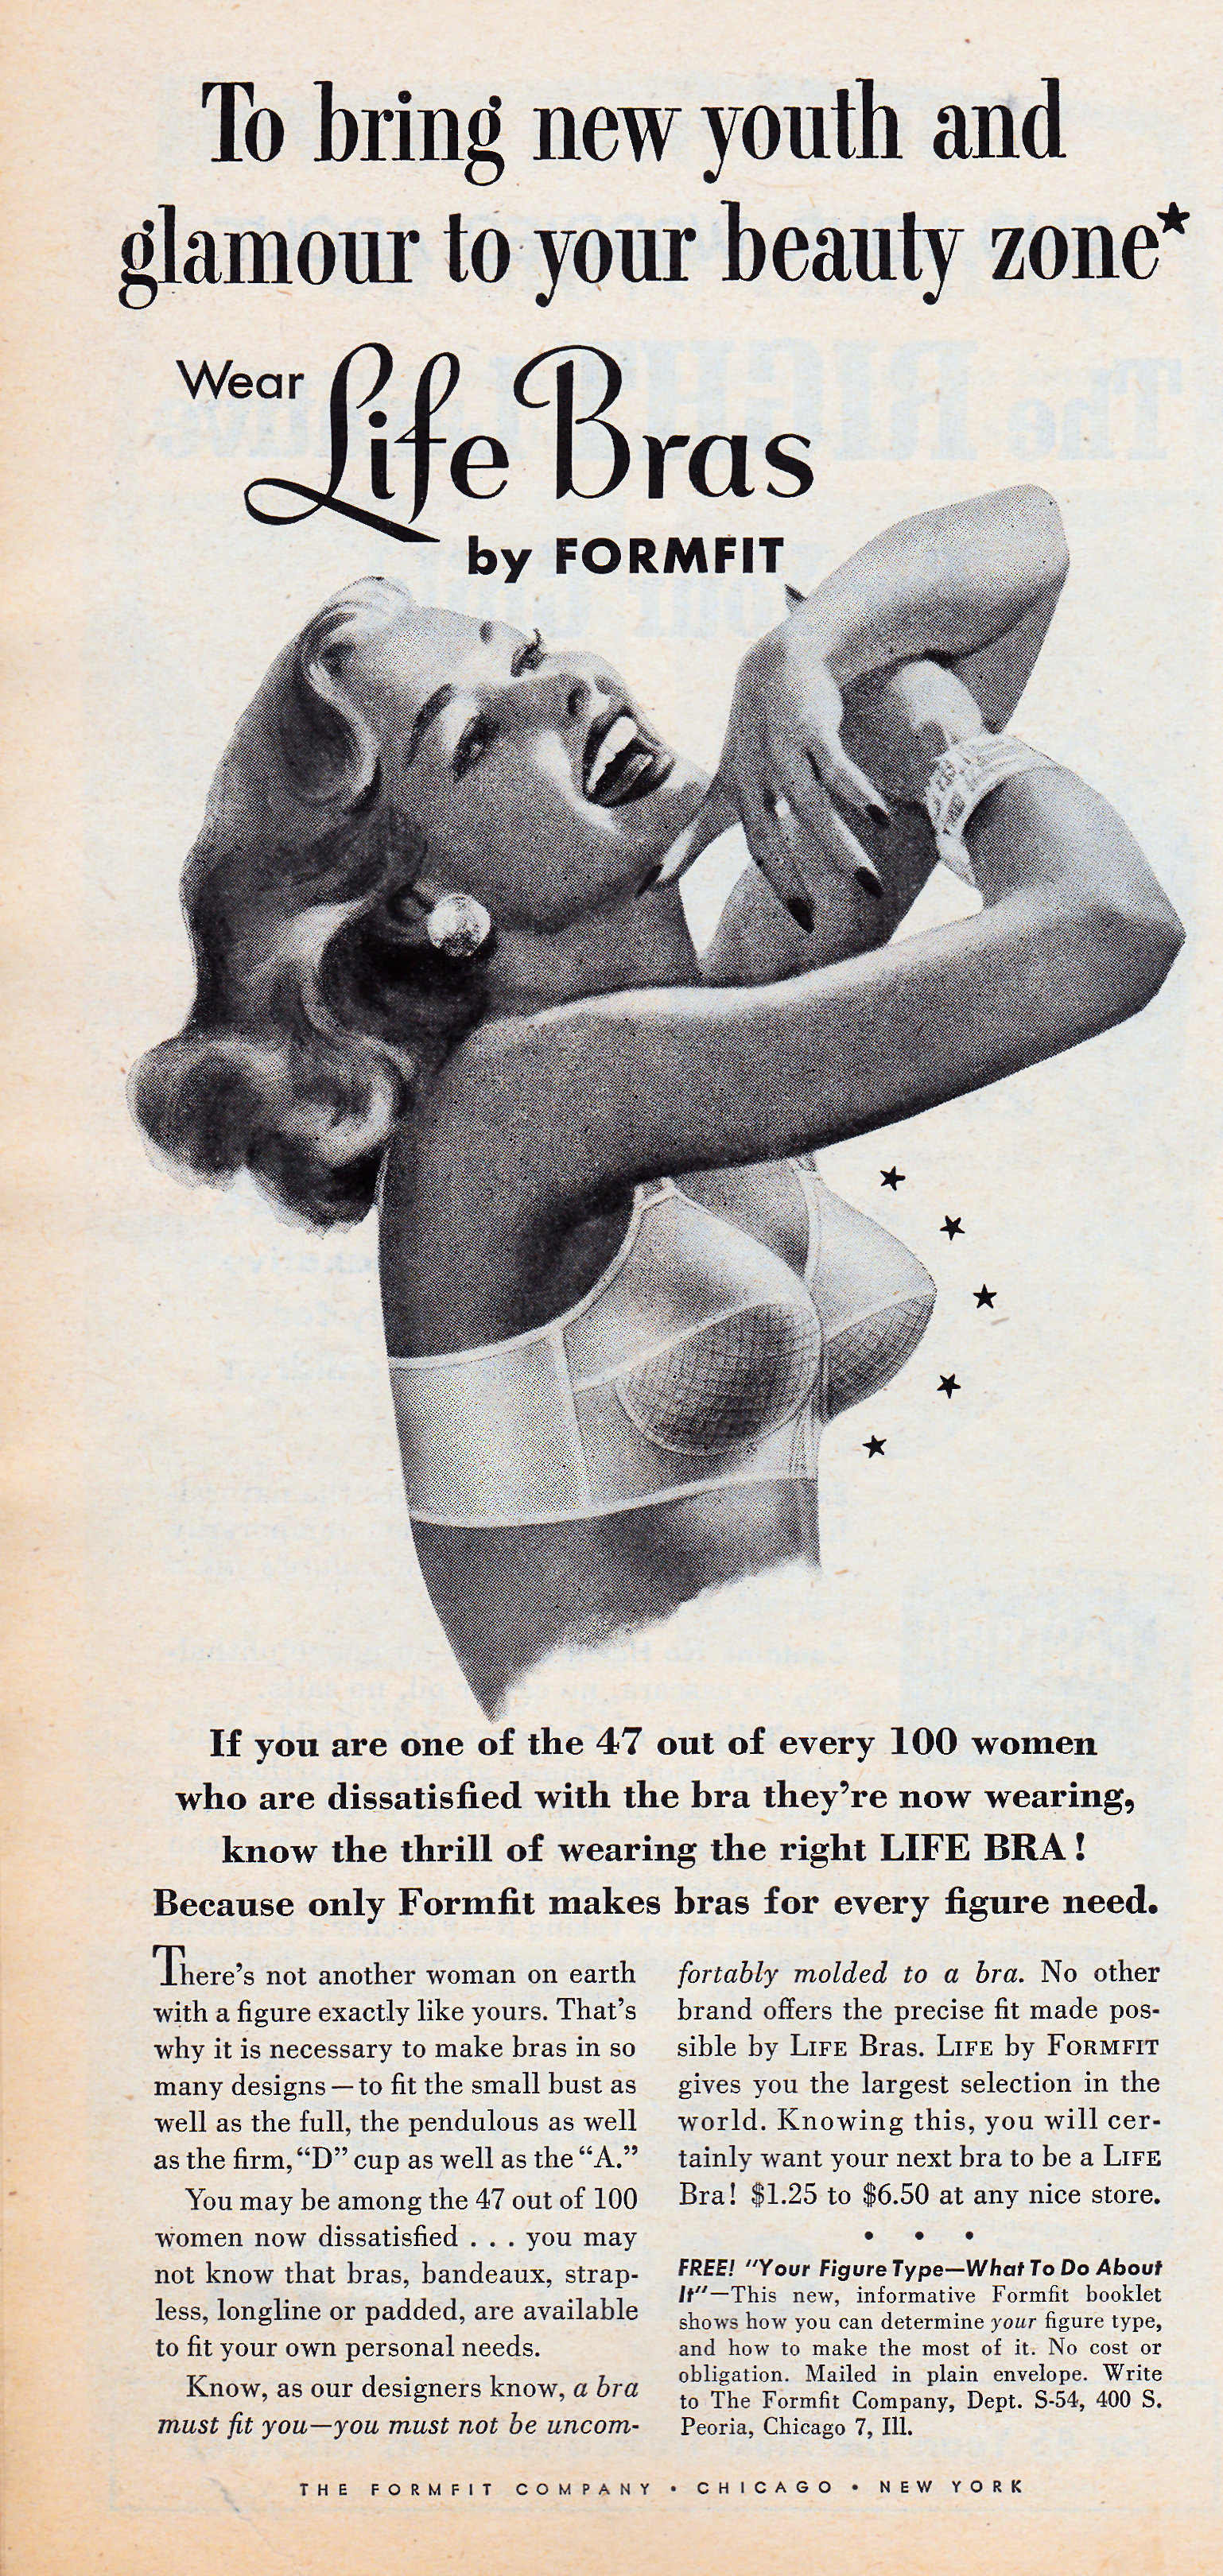 Life Bras by Formfit - date unknown